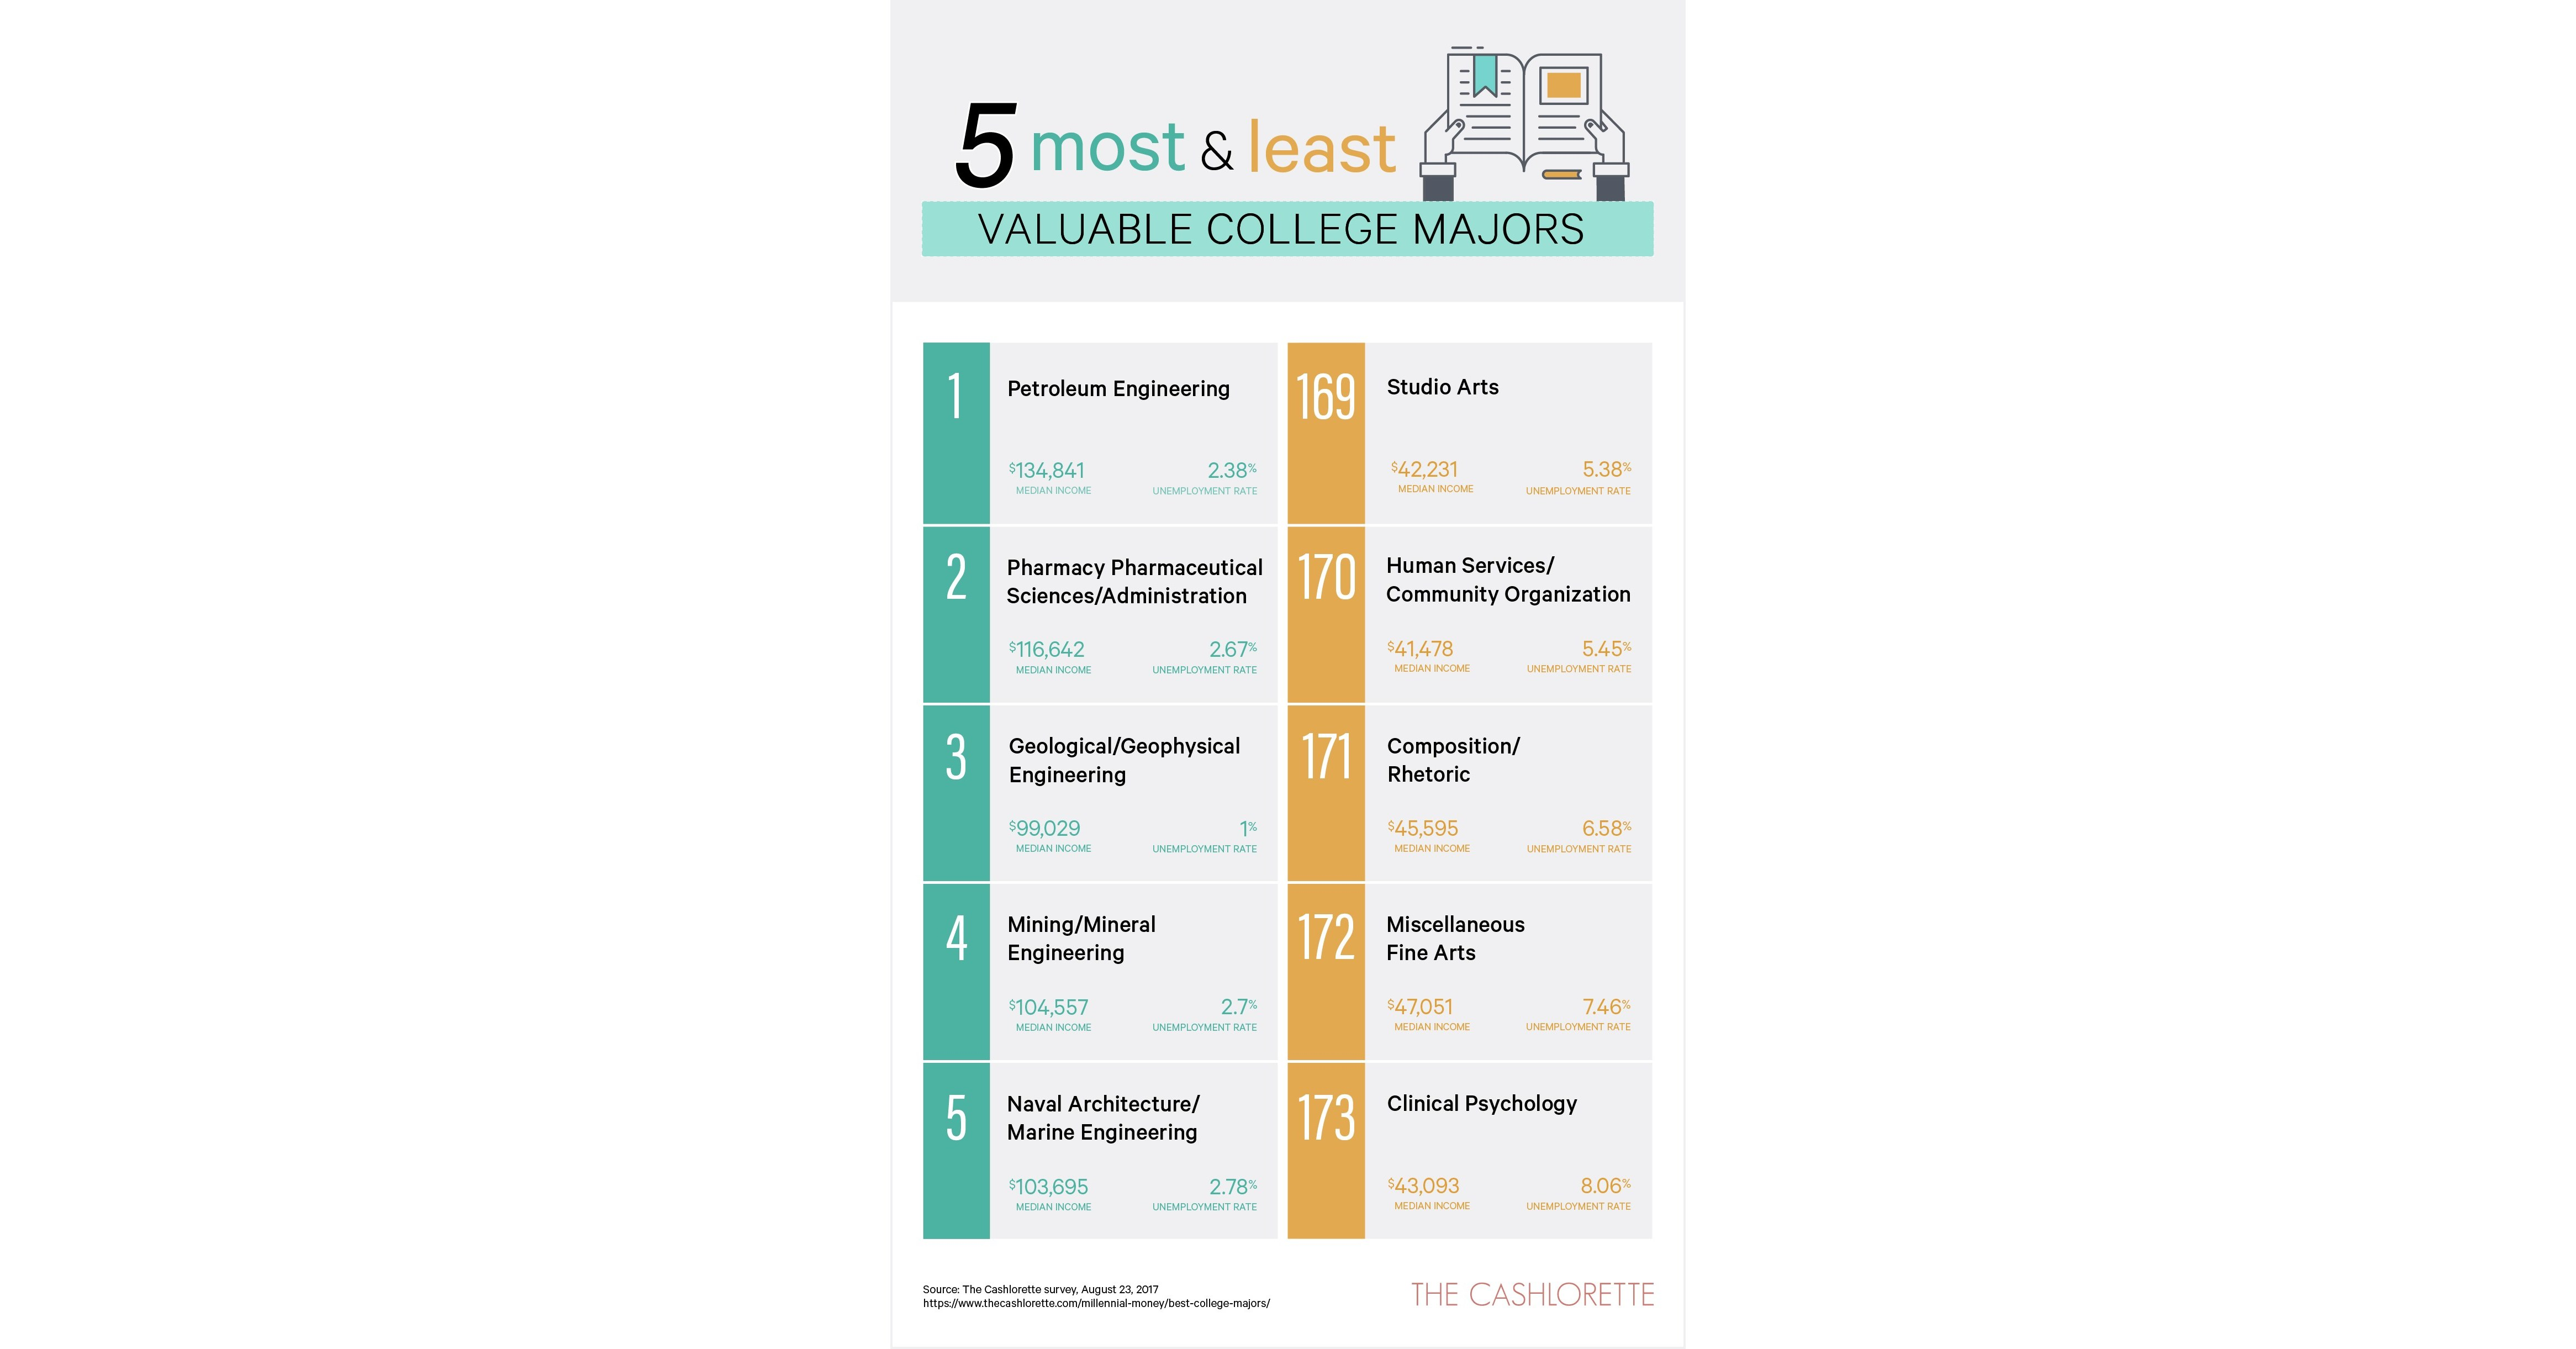 Most And Least Valuable College Majors